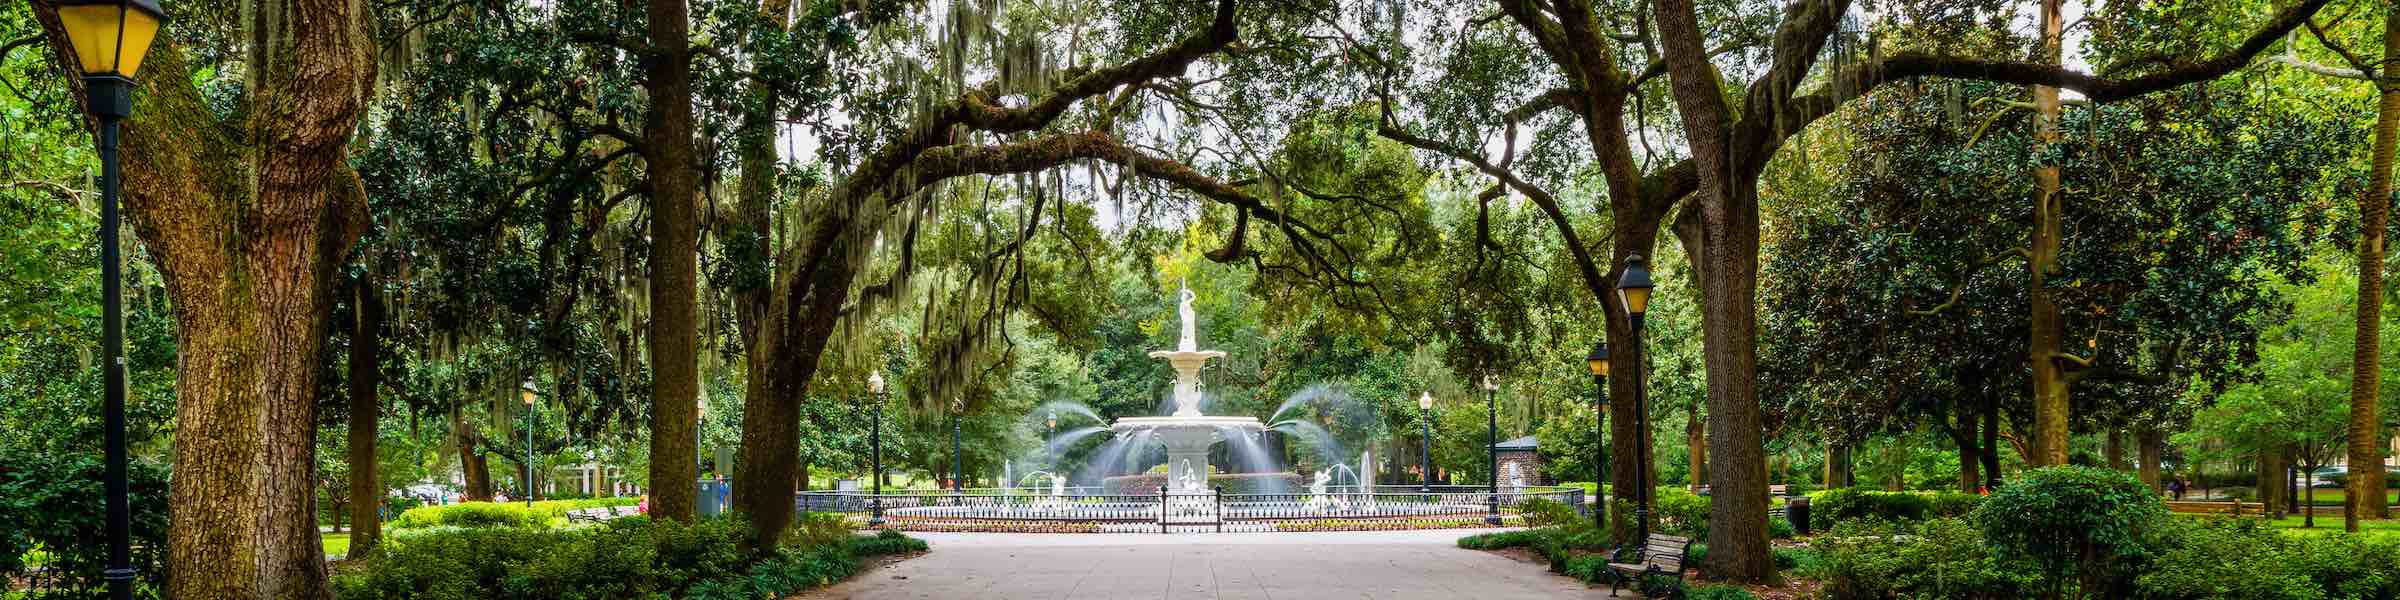 A view of the fountain in Savannah's Forsyth Park.